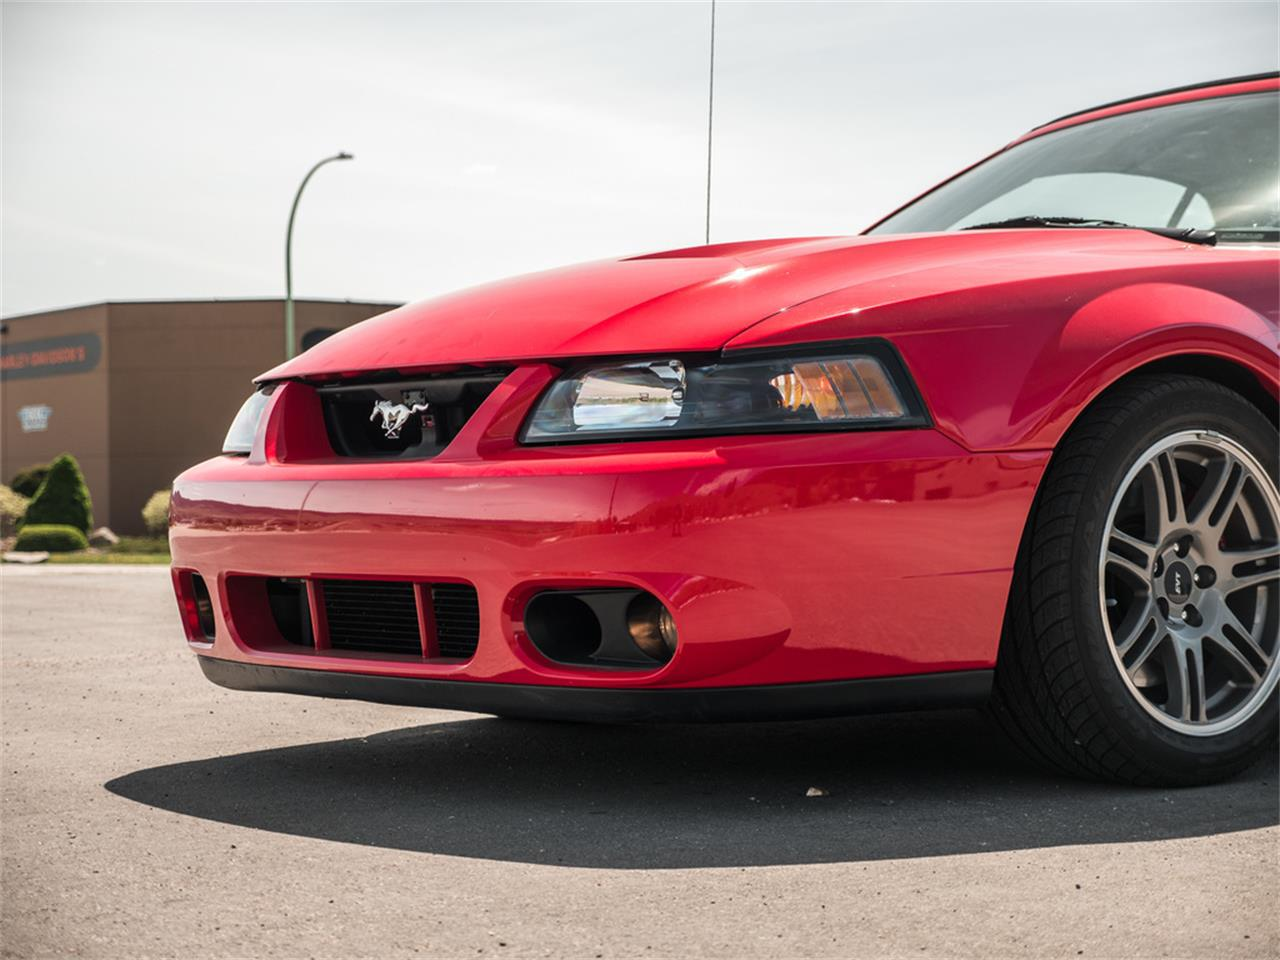 Large Picture of 2003 Ford Mustang located in British Columbia - $38,185.00 - Q9QR